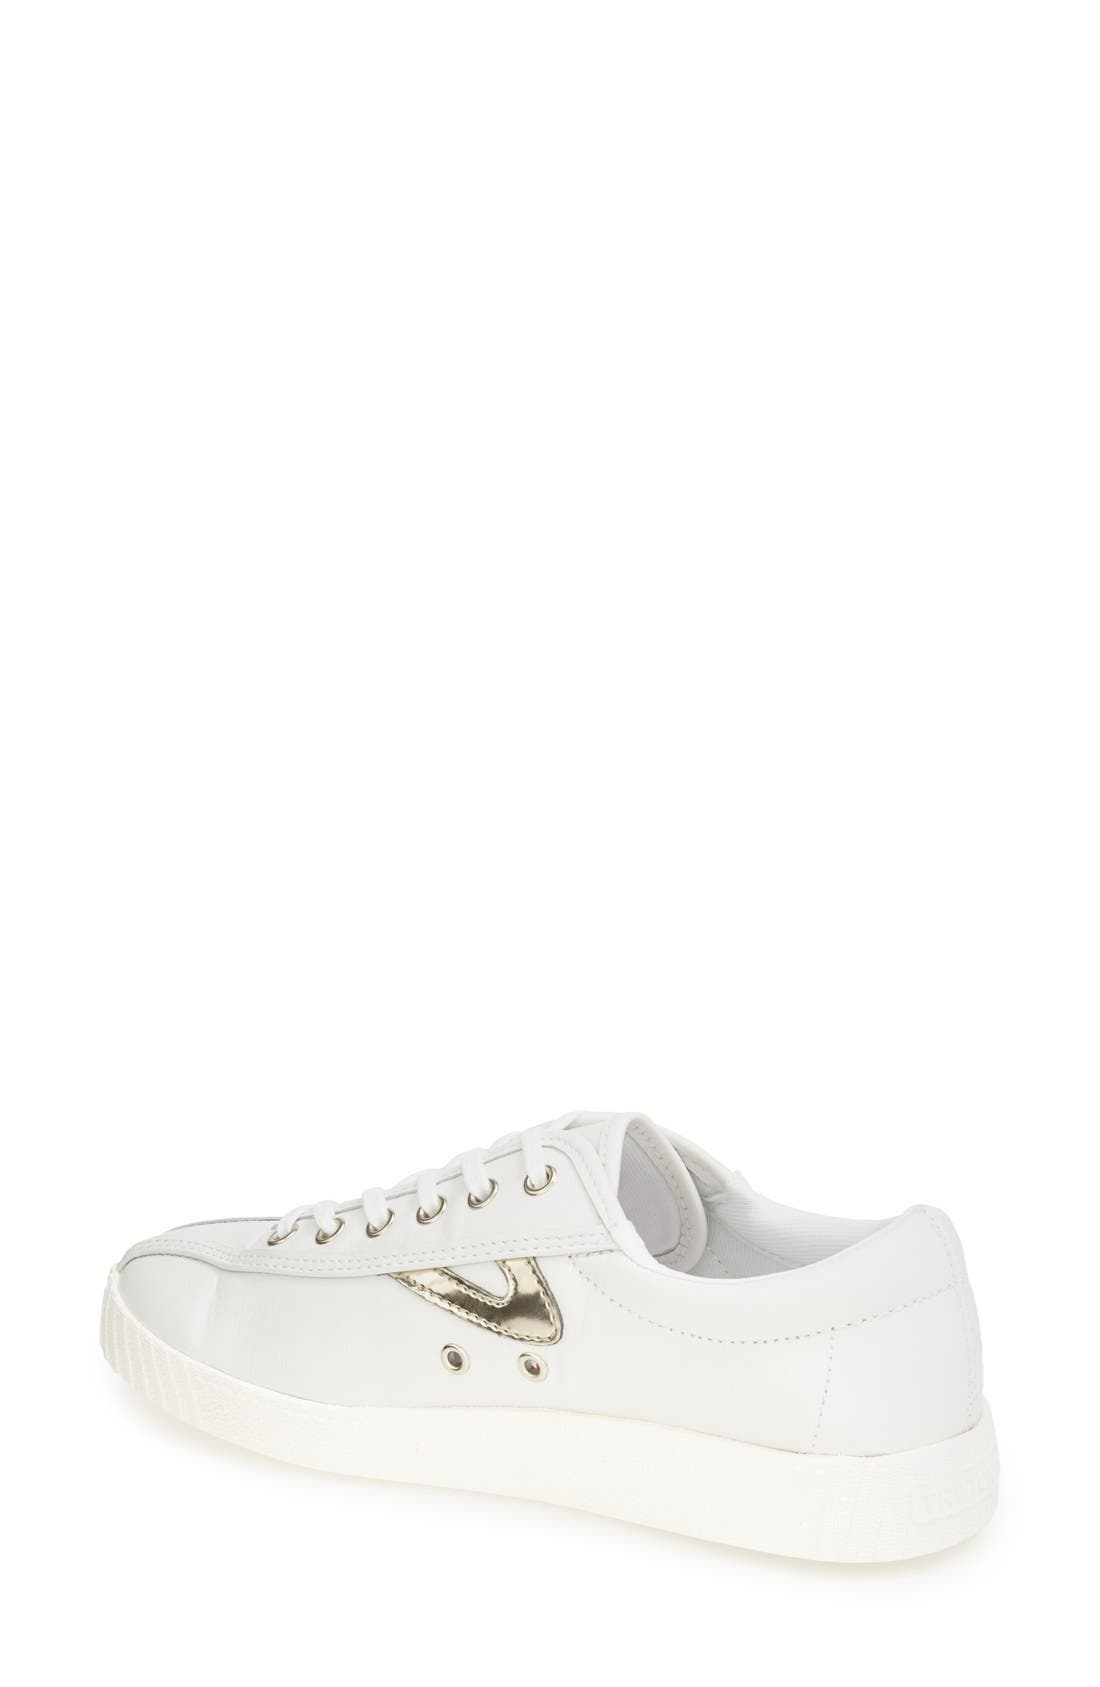 'Nylite2 Plus' Sneaker,                             Alternate thumbnail 2, color,                             WHITE/ GOLD